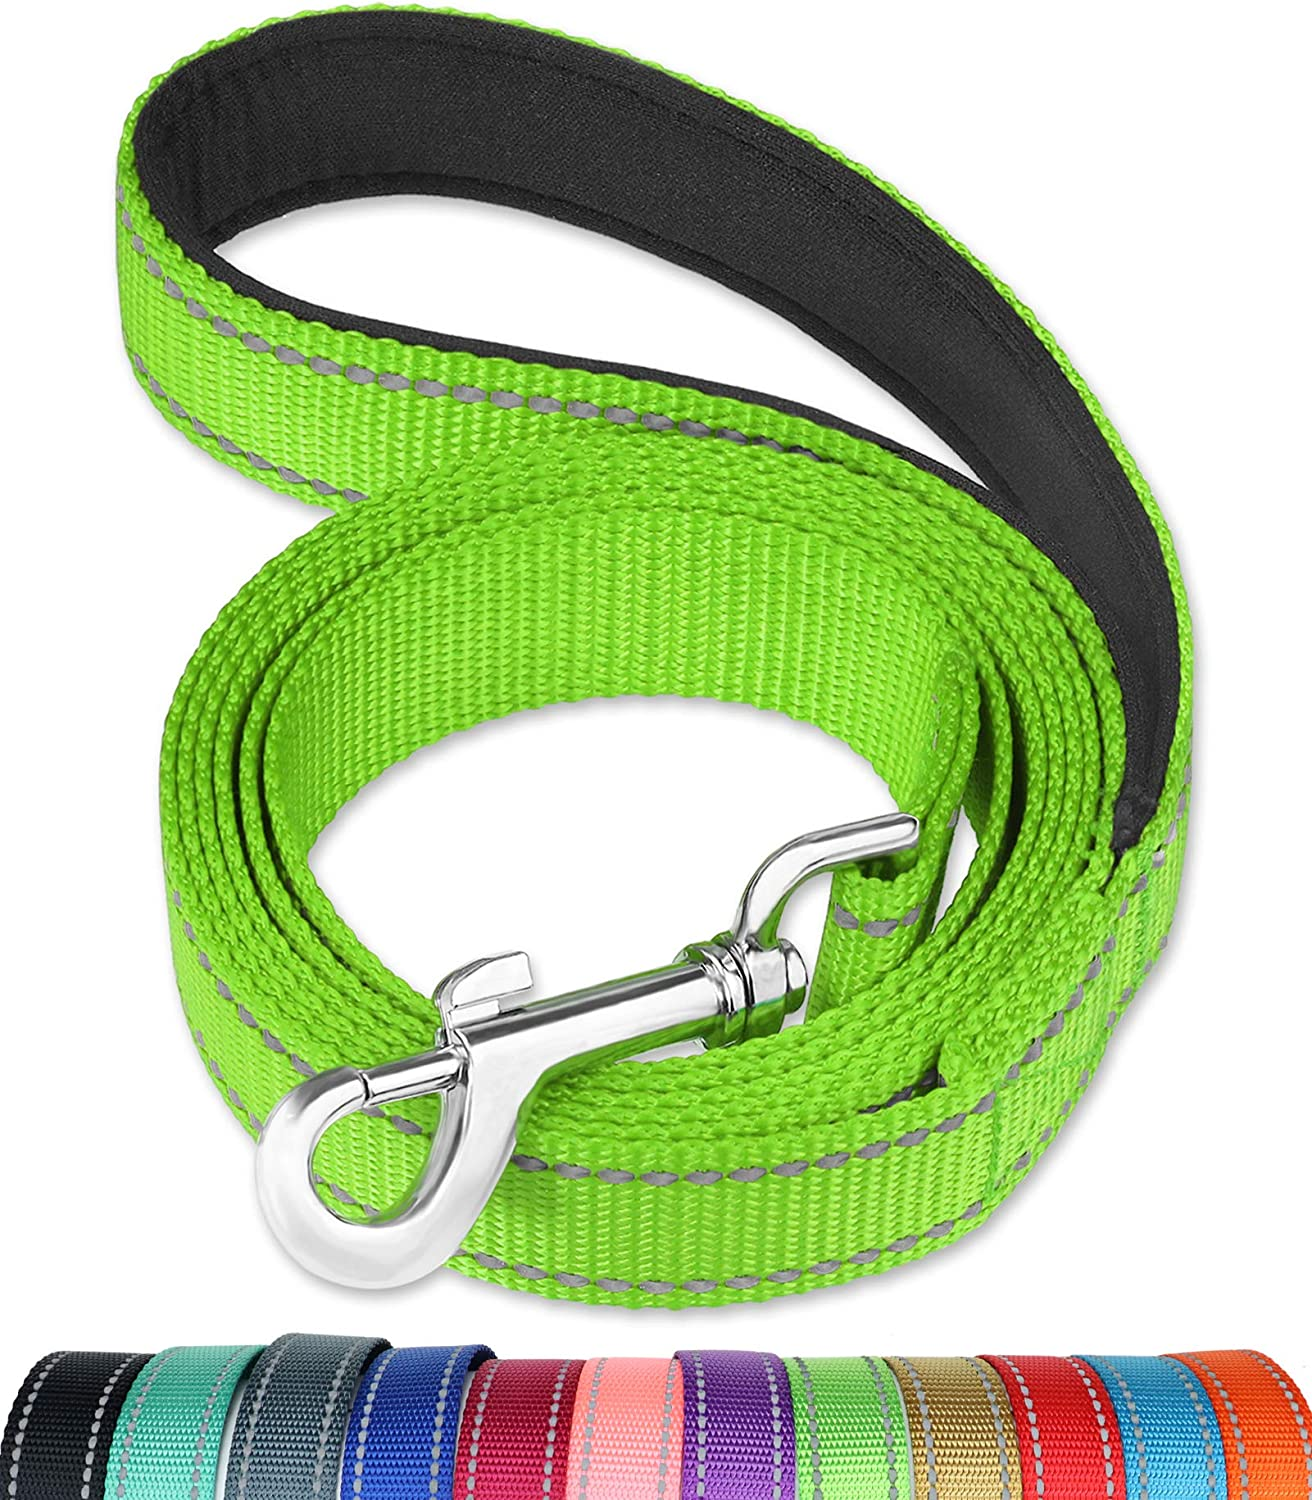 FunTags 6FT Reflective Dog Leash with Soft Padded Handle for Training,Walking Lead for Large & Medium Dog,1 Inch Wide,Green : Pet Supplies